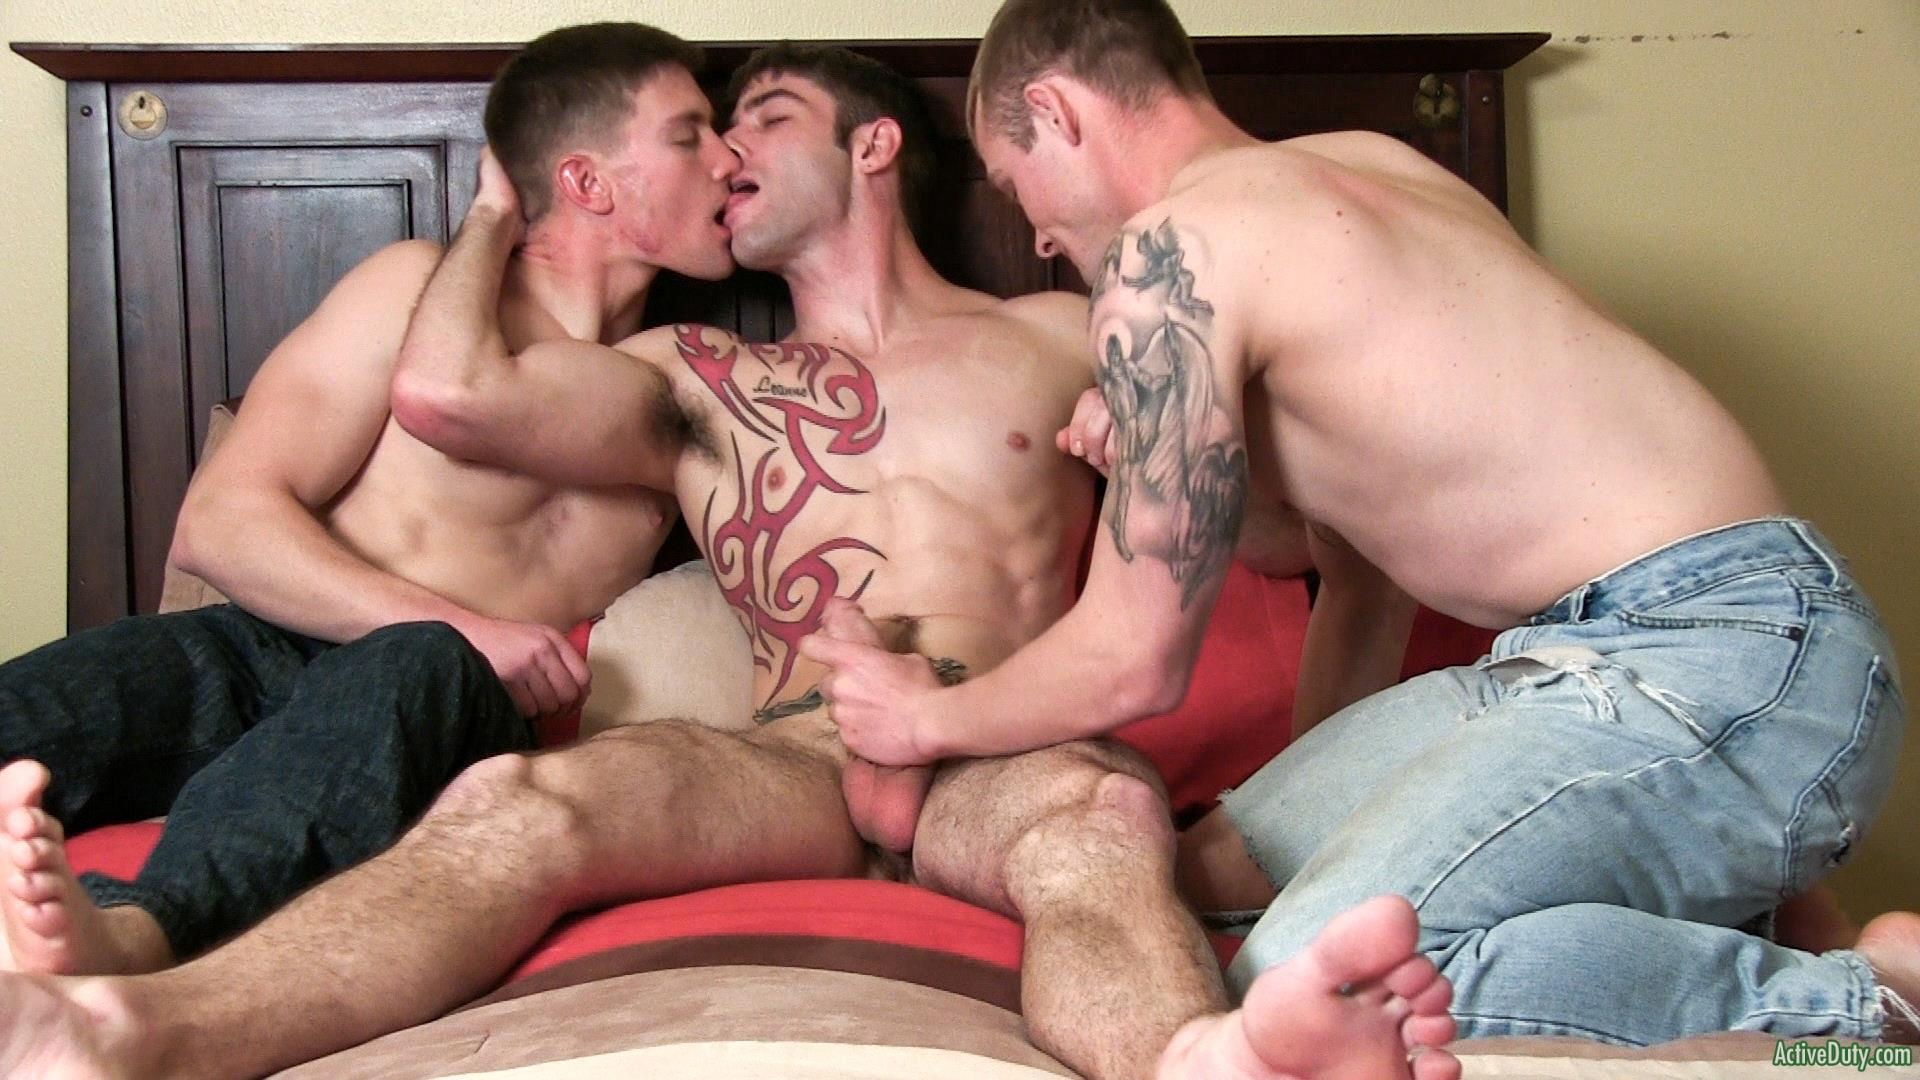 Active Duty Jake Riley Shea Three Straight Army Guys Fucking Hairy Ass Amateur Gay Porn 01 Three Way Army Buddy Hairy Ass Flip Flop Fucking